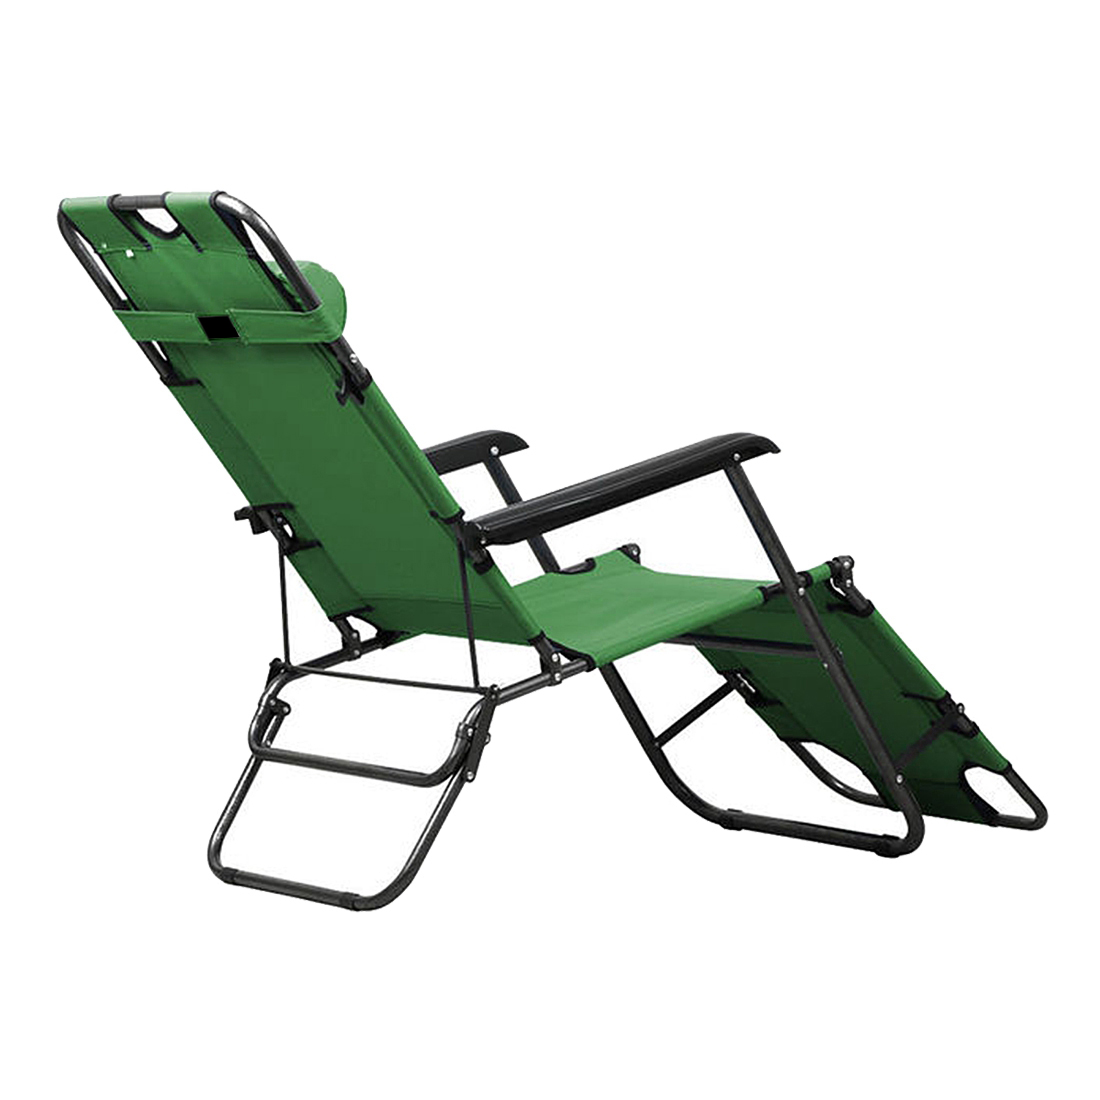 Metal Folding Chaise Lounge Chair Patio Outdoor Pool Beach Lawn Recliner  New Color:Army green size:178cm(70inch) - Beach Chaise Lounge Chairs Promotion-Shop For Promotional Beach